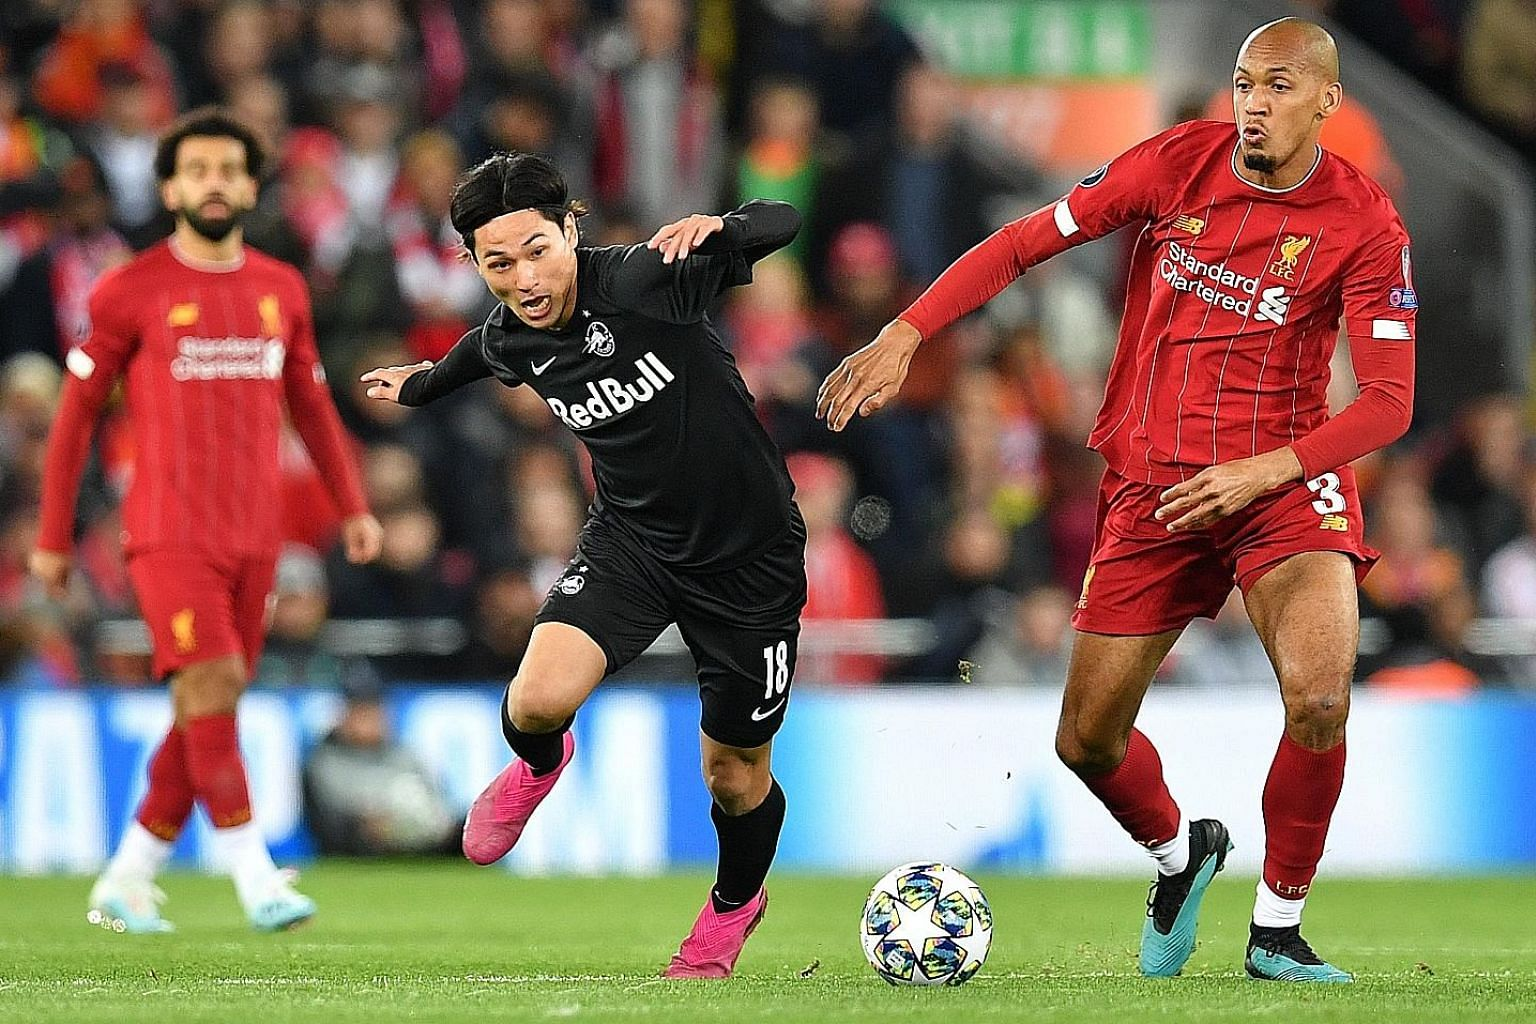 Salzburg's Takumi Minamino vying for the ball with Liverpool's Fabinho during their Champions League clash at Anfield in October. The Japanese, who can play as a winger or an attacking midfielder, impressed Reds boss Jurgen Klopp during his team's 4-